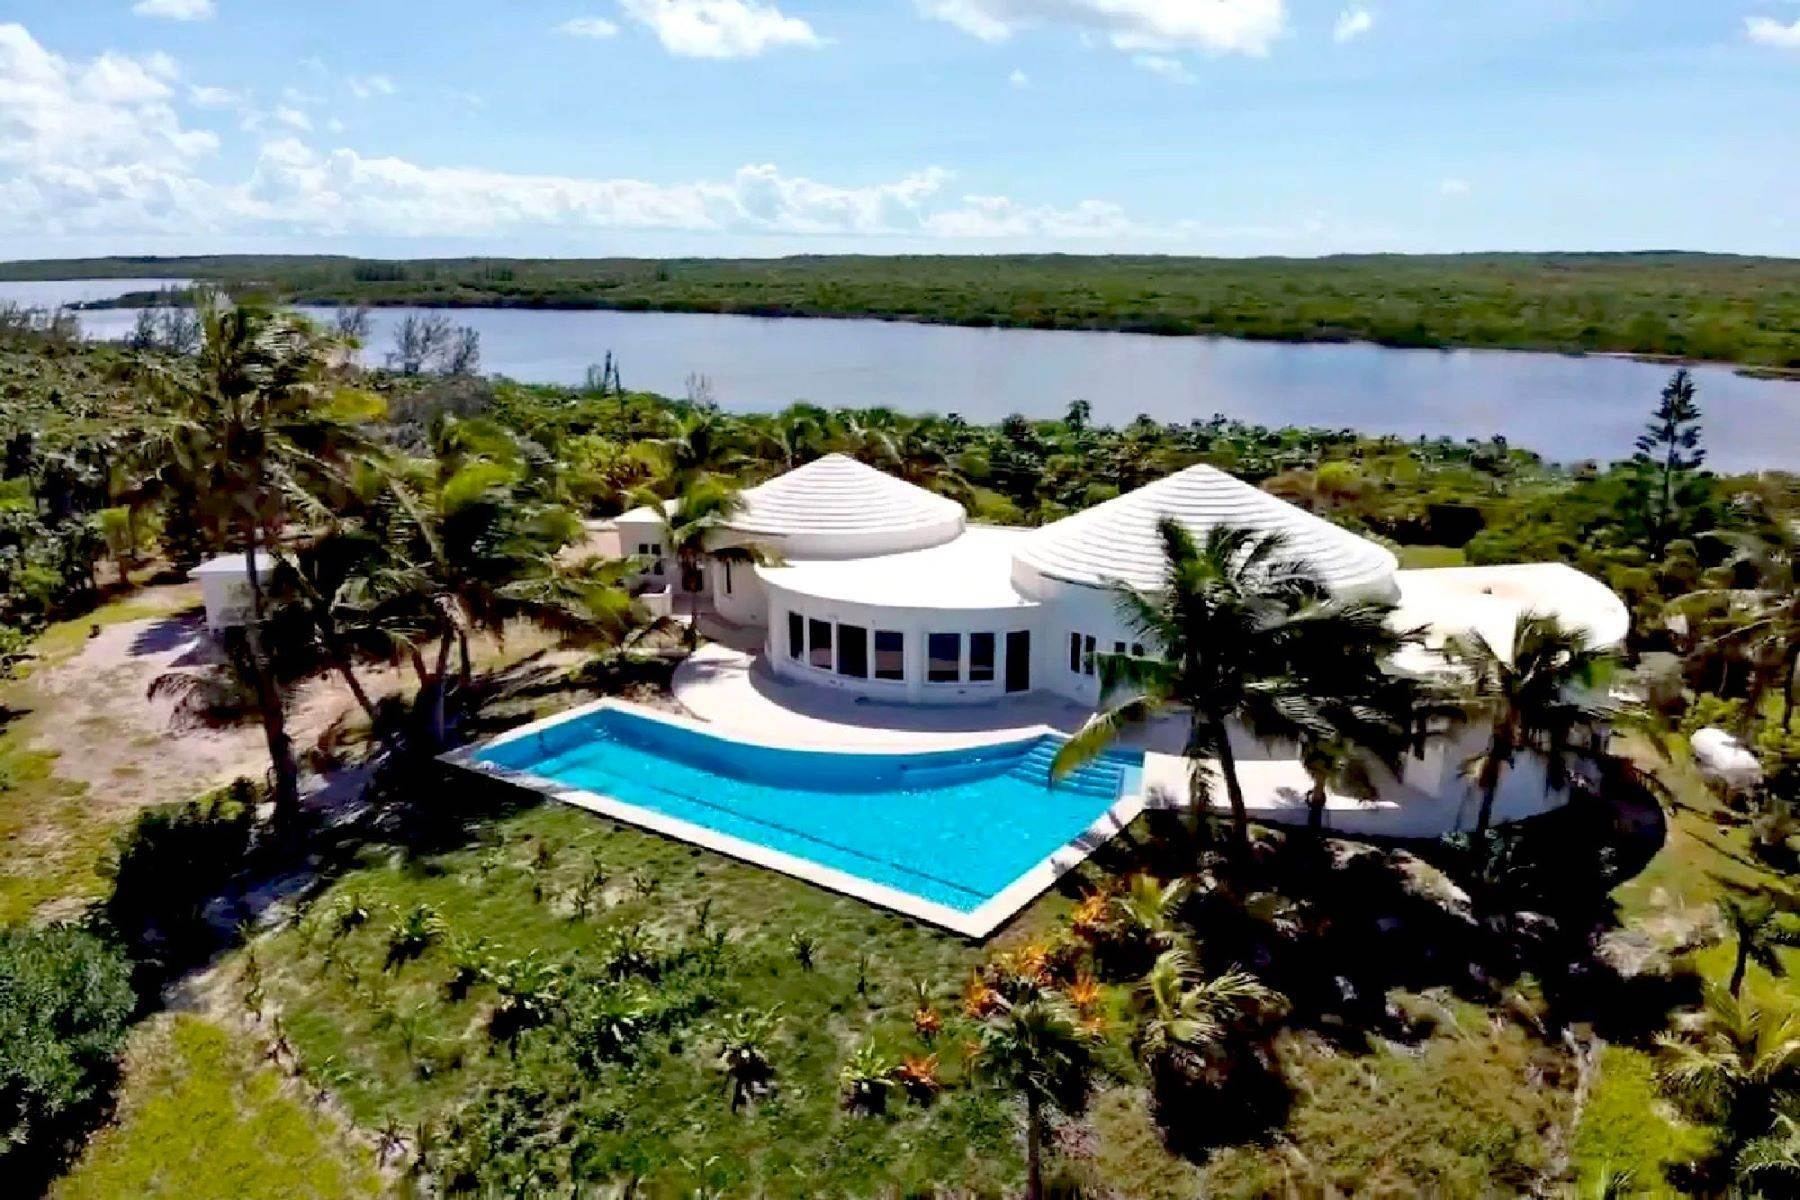 Single Family Homes for Sale at For Those Ready For What's Next Double Bay, Eleuthera Bahamas